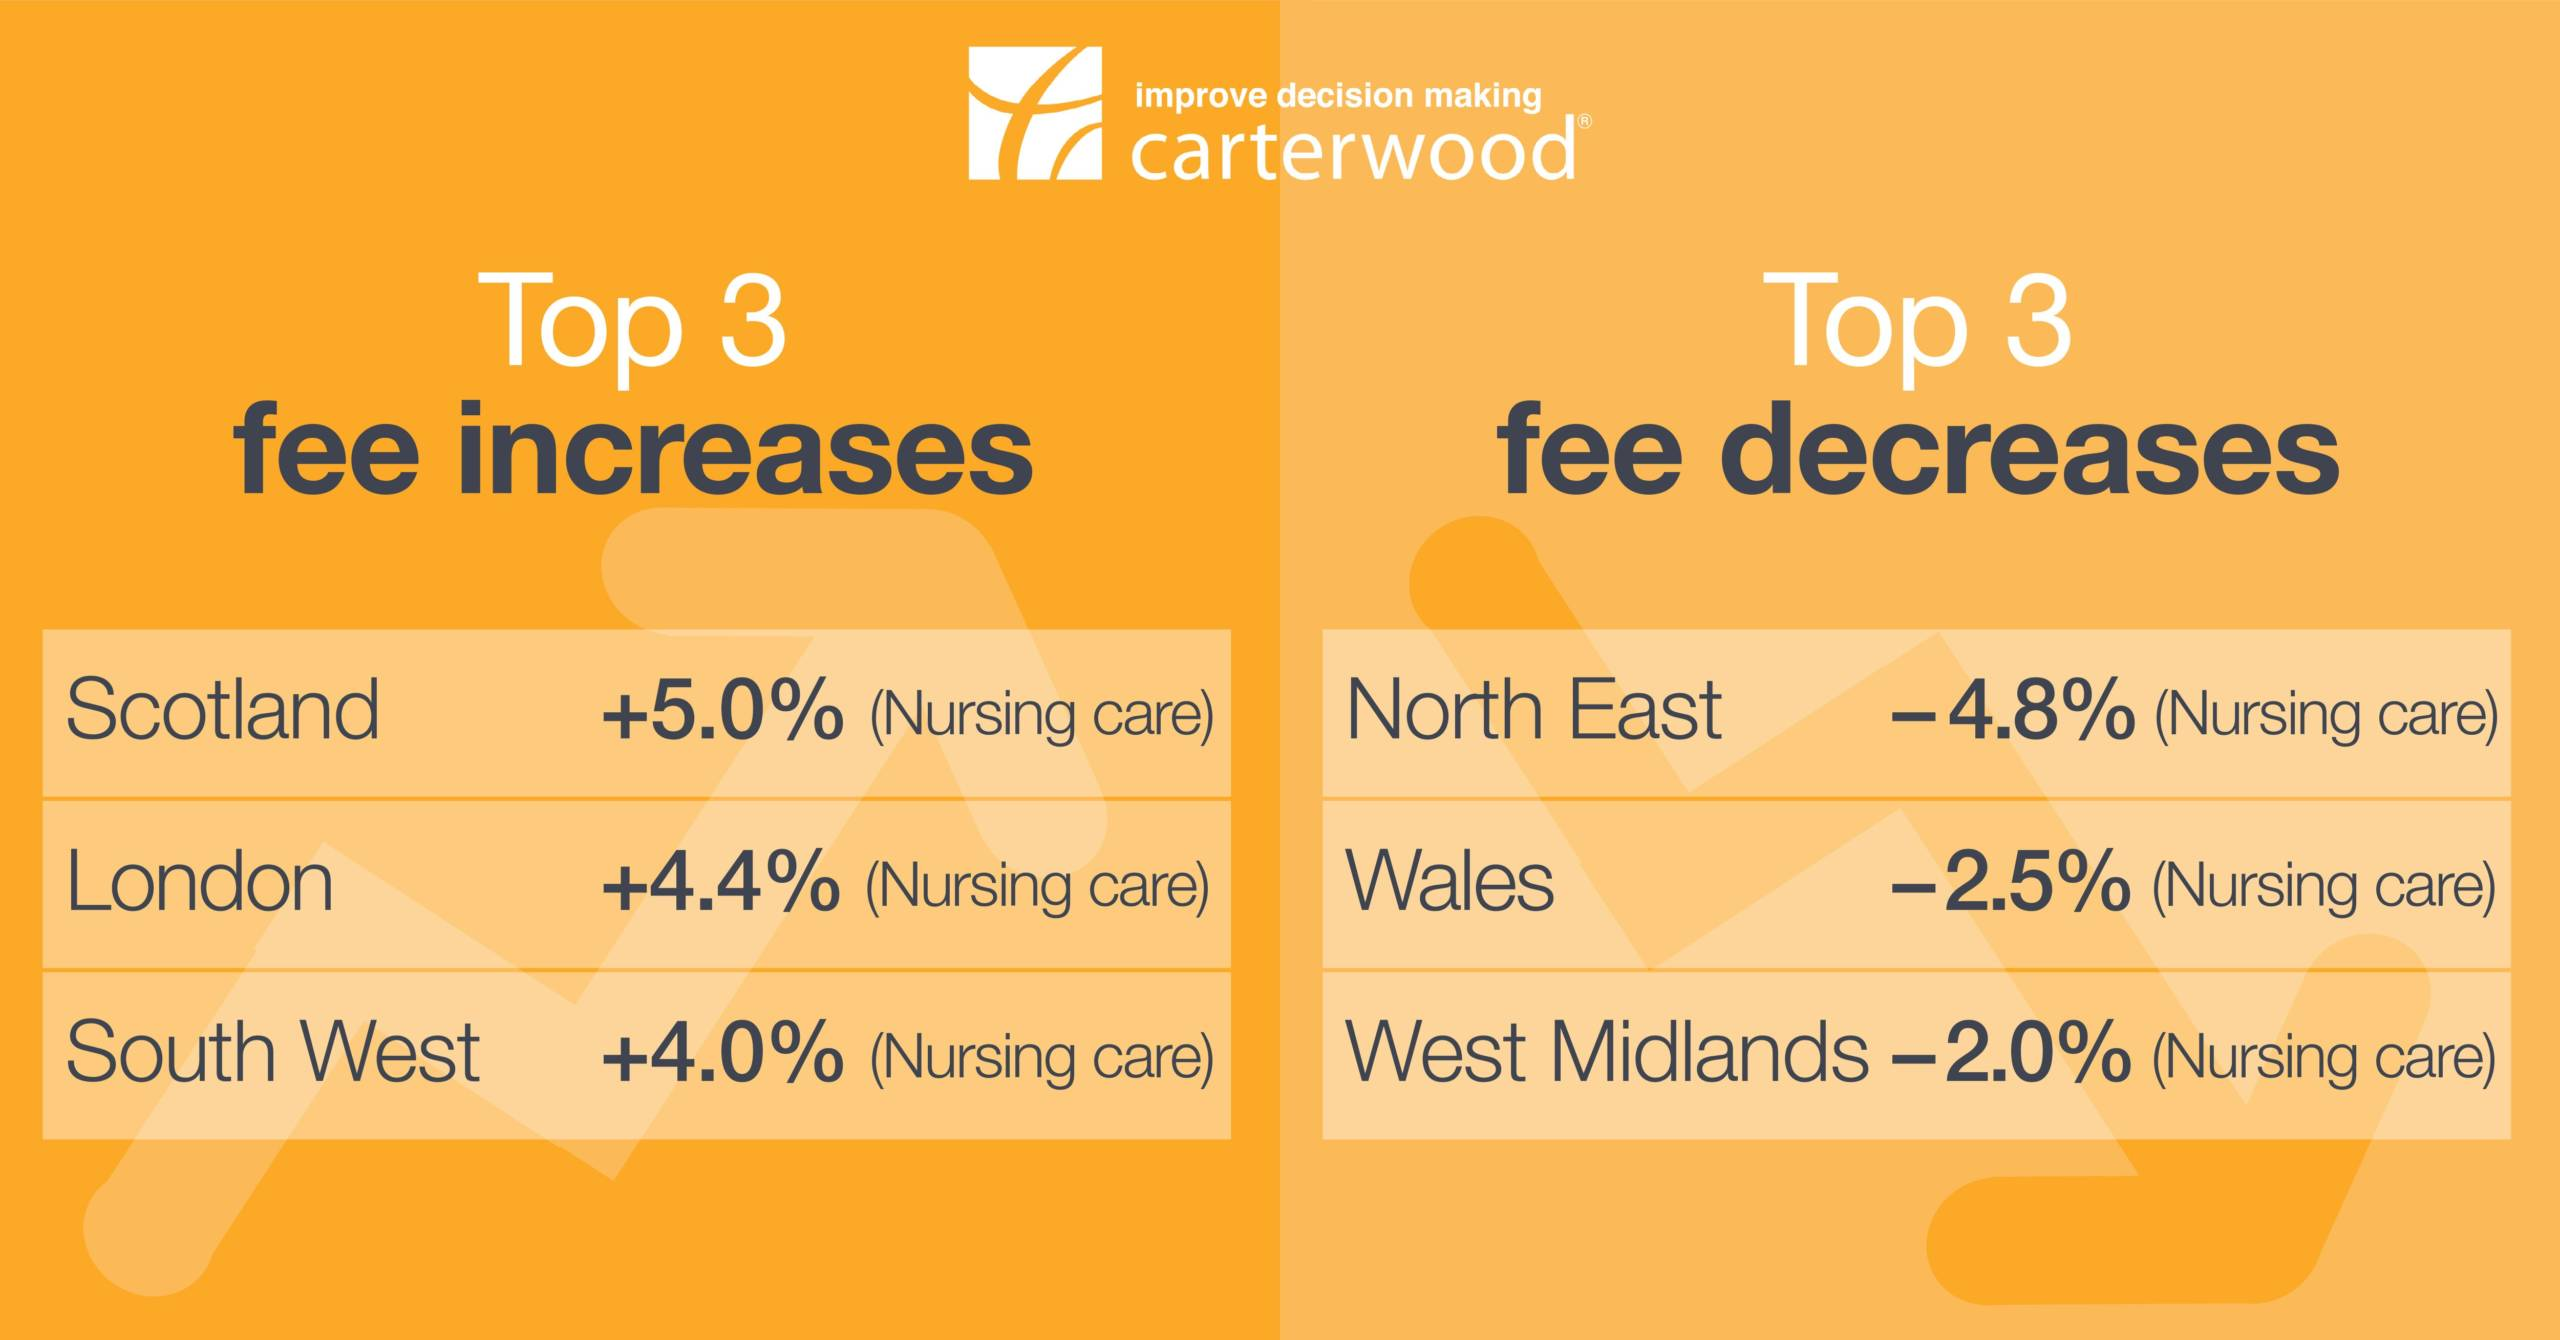 Self-funded elderly care home fees rise and fall by +5% to -4.8% across Great Britain